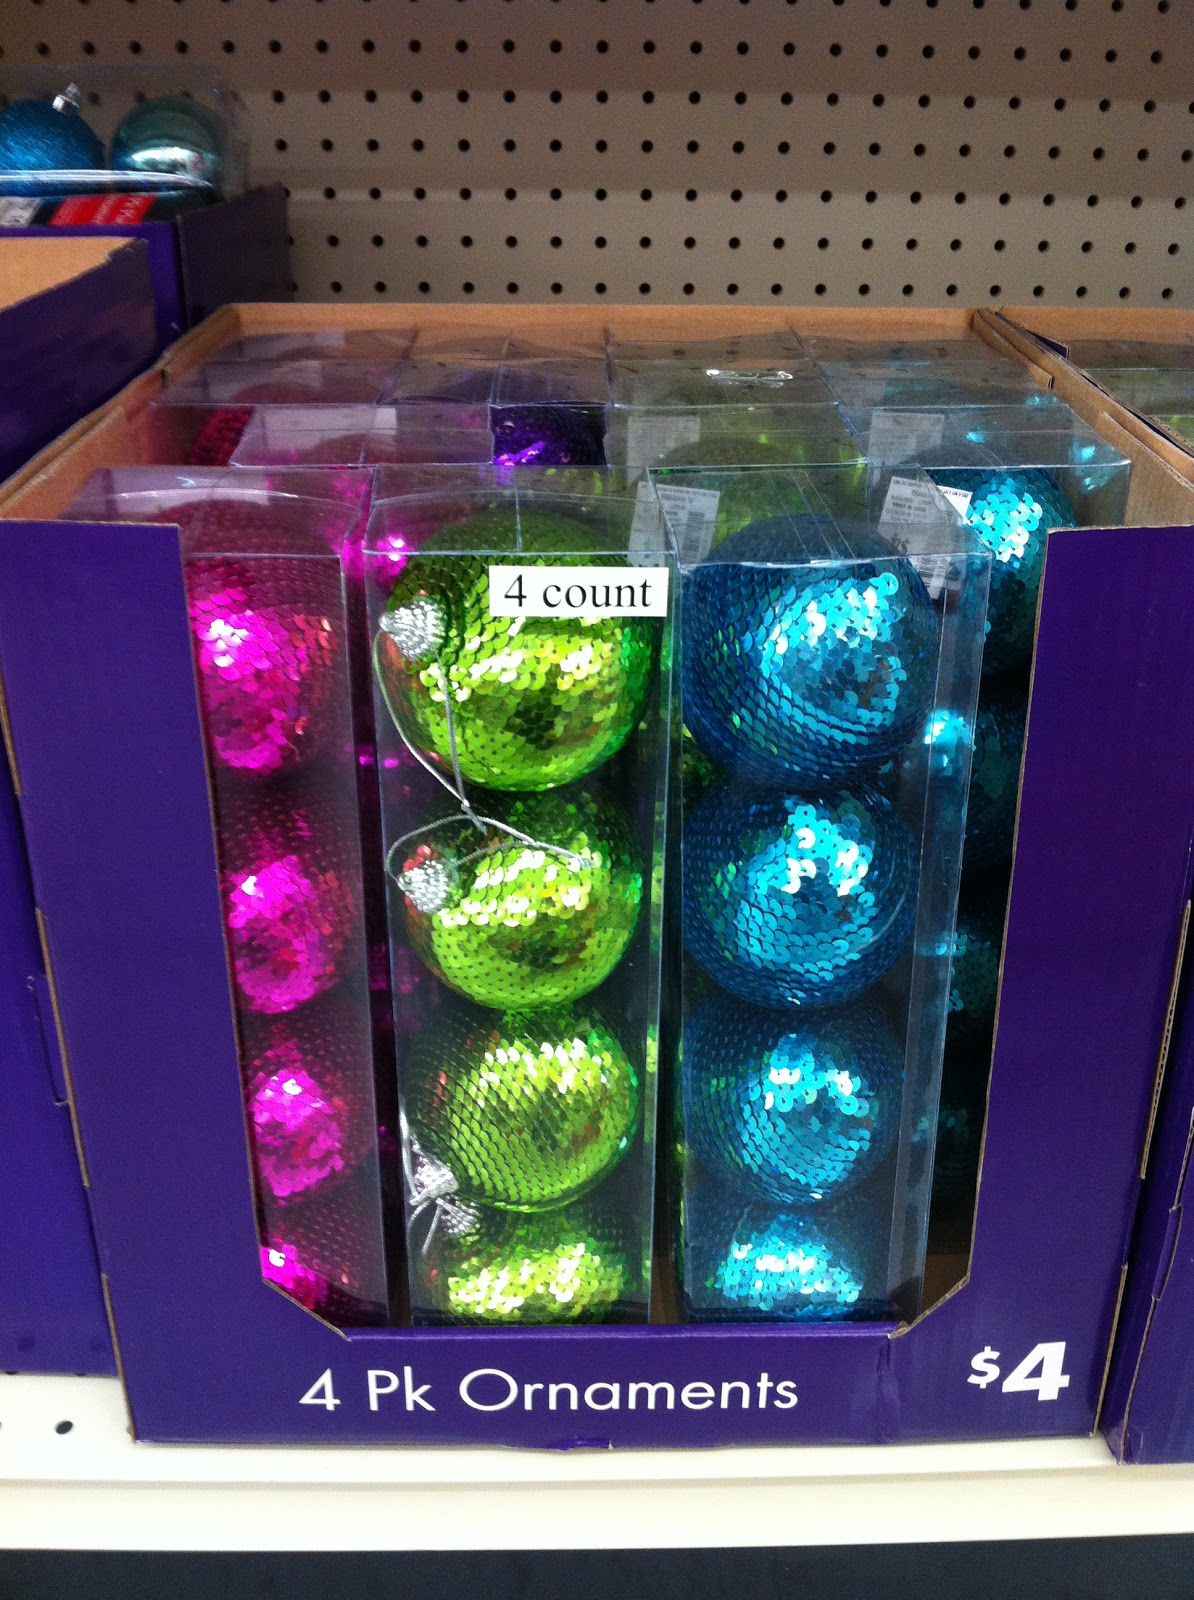 large plastic ornament bulbs for decorating at joann fabrics - Joann Fabrics Christmas Decorations